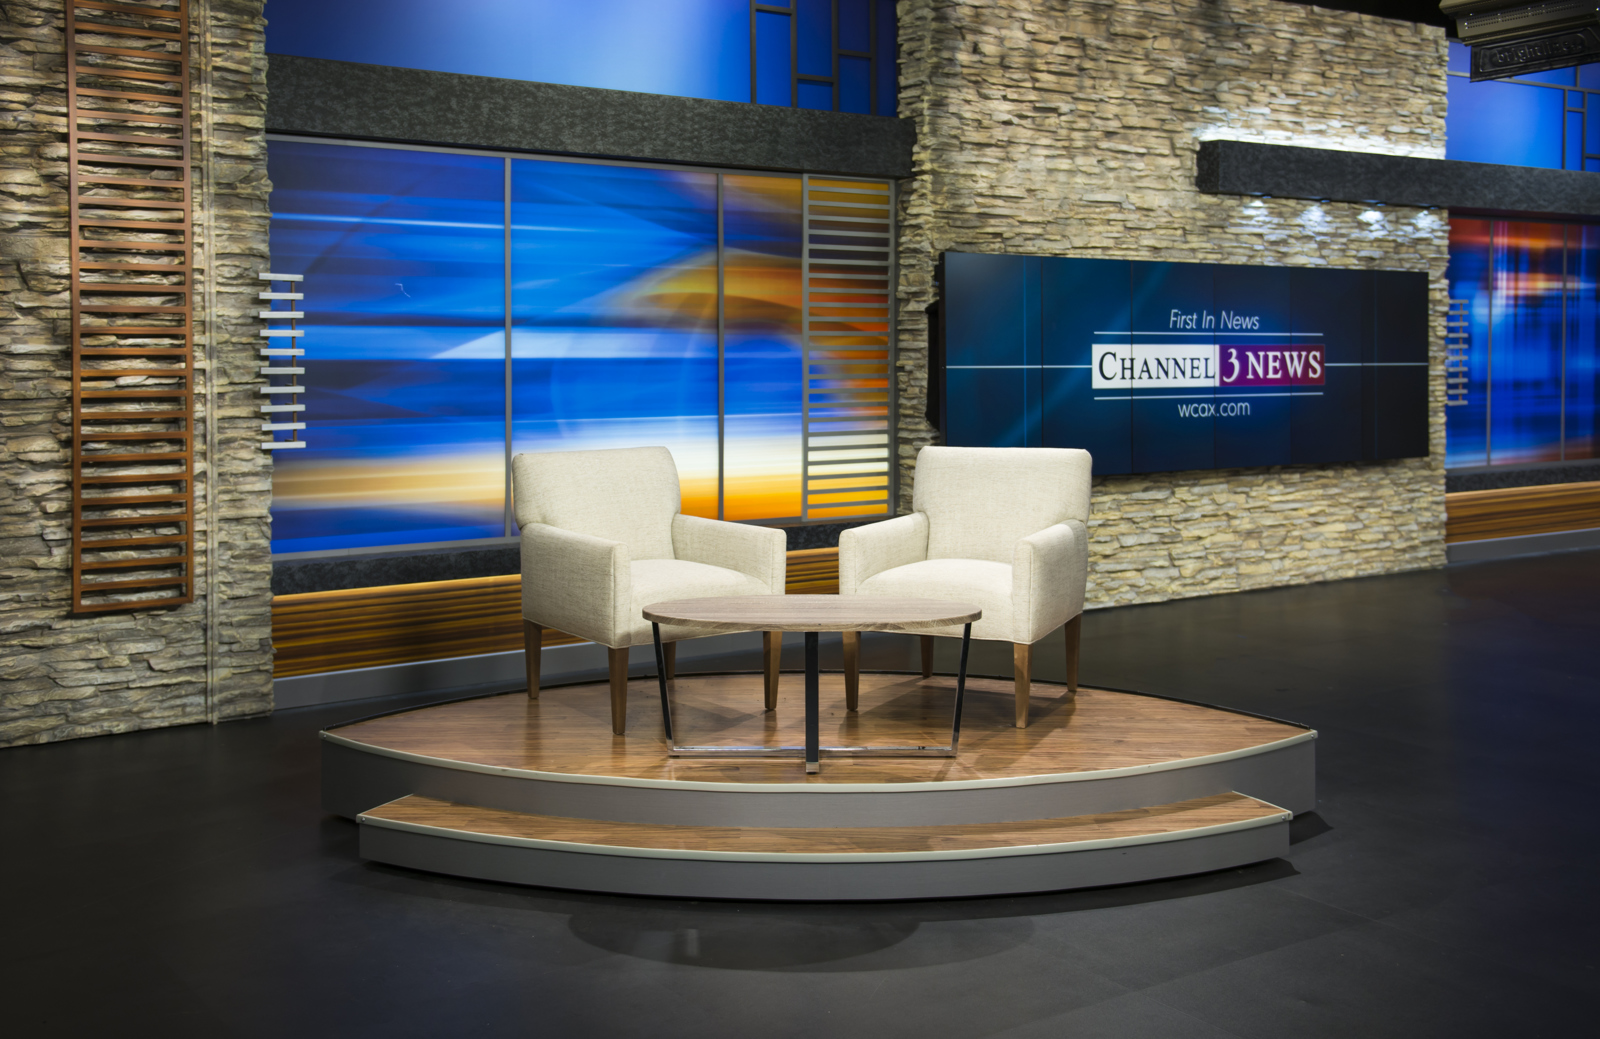 ncs_wcax-channel-3-news-studio_0004